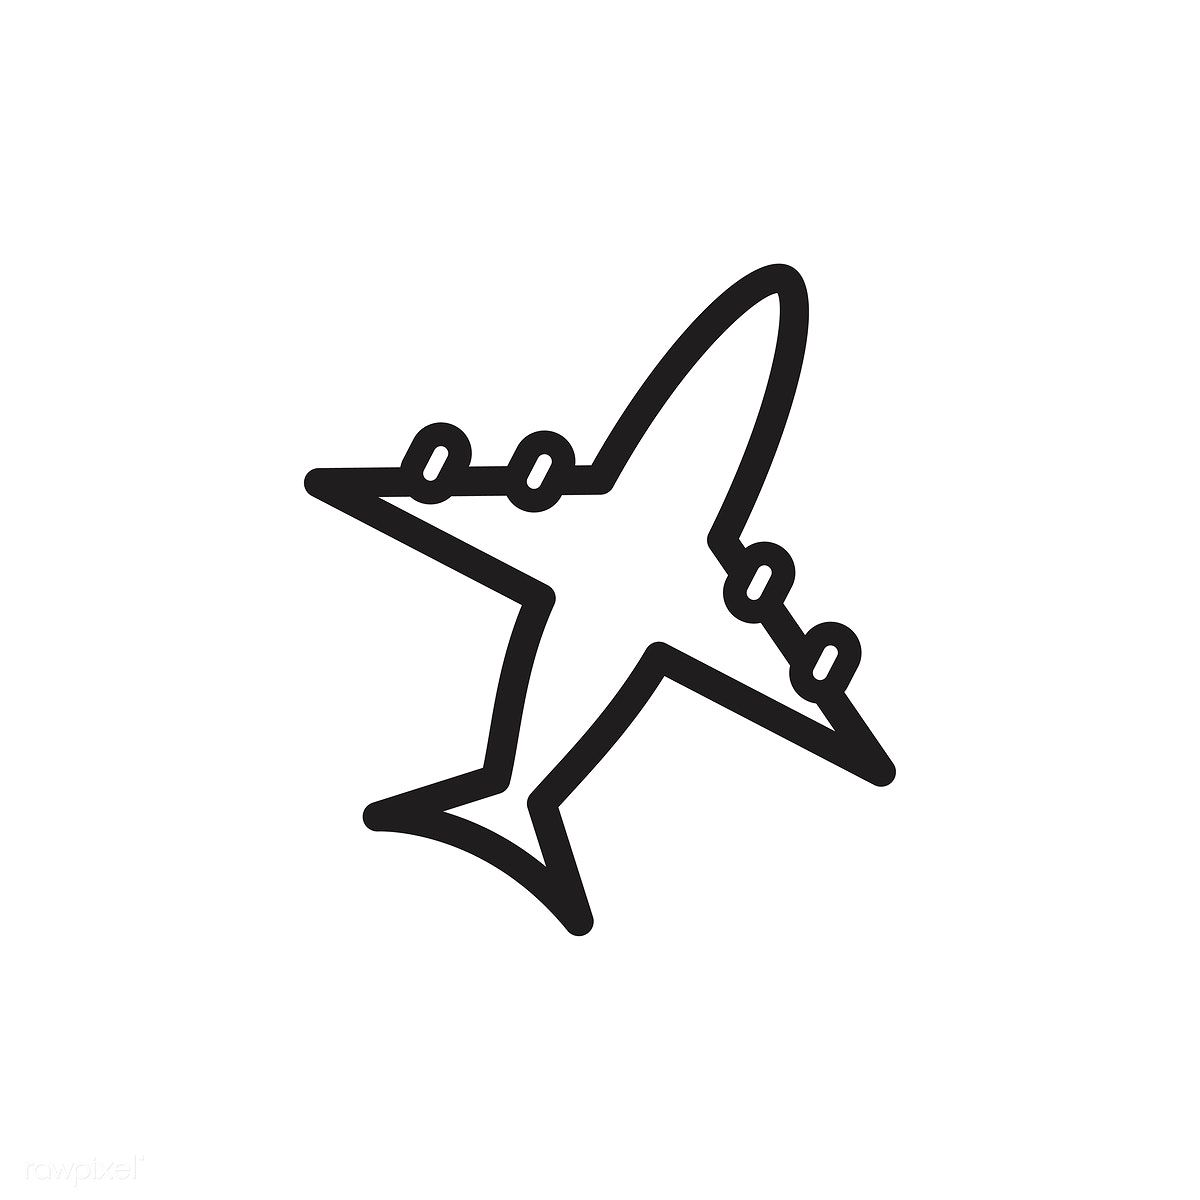 Download Premium Vector Of Airplane Icon Vector 533396 Airplane Icon Vector Free Stock Images Free